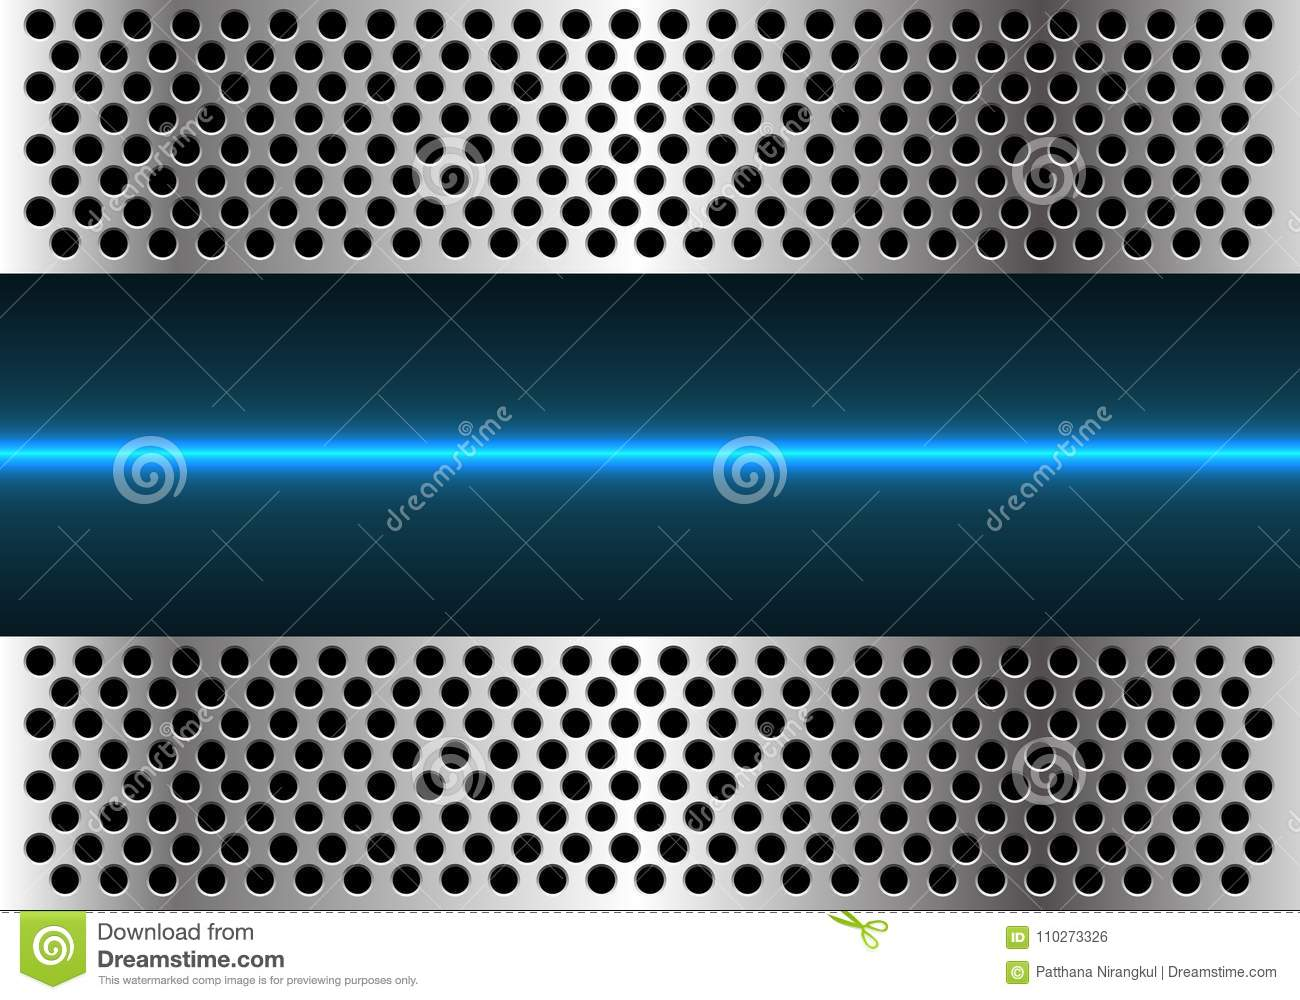 Technology Background With Circular Mesh: Abstract Blue Light Line Technology In Metal Circle Mesh